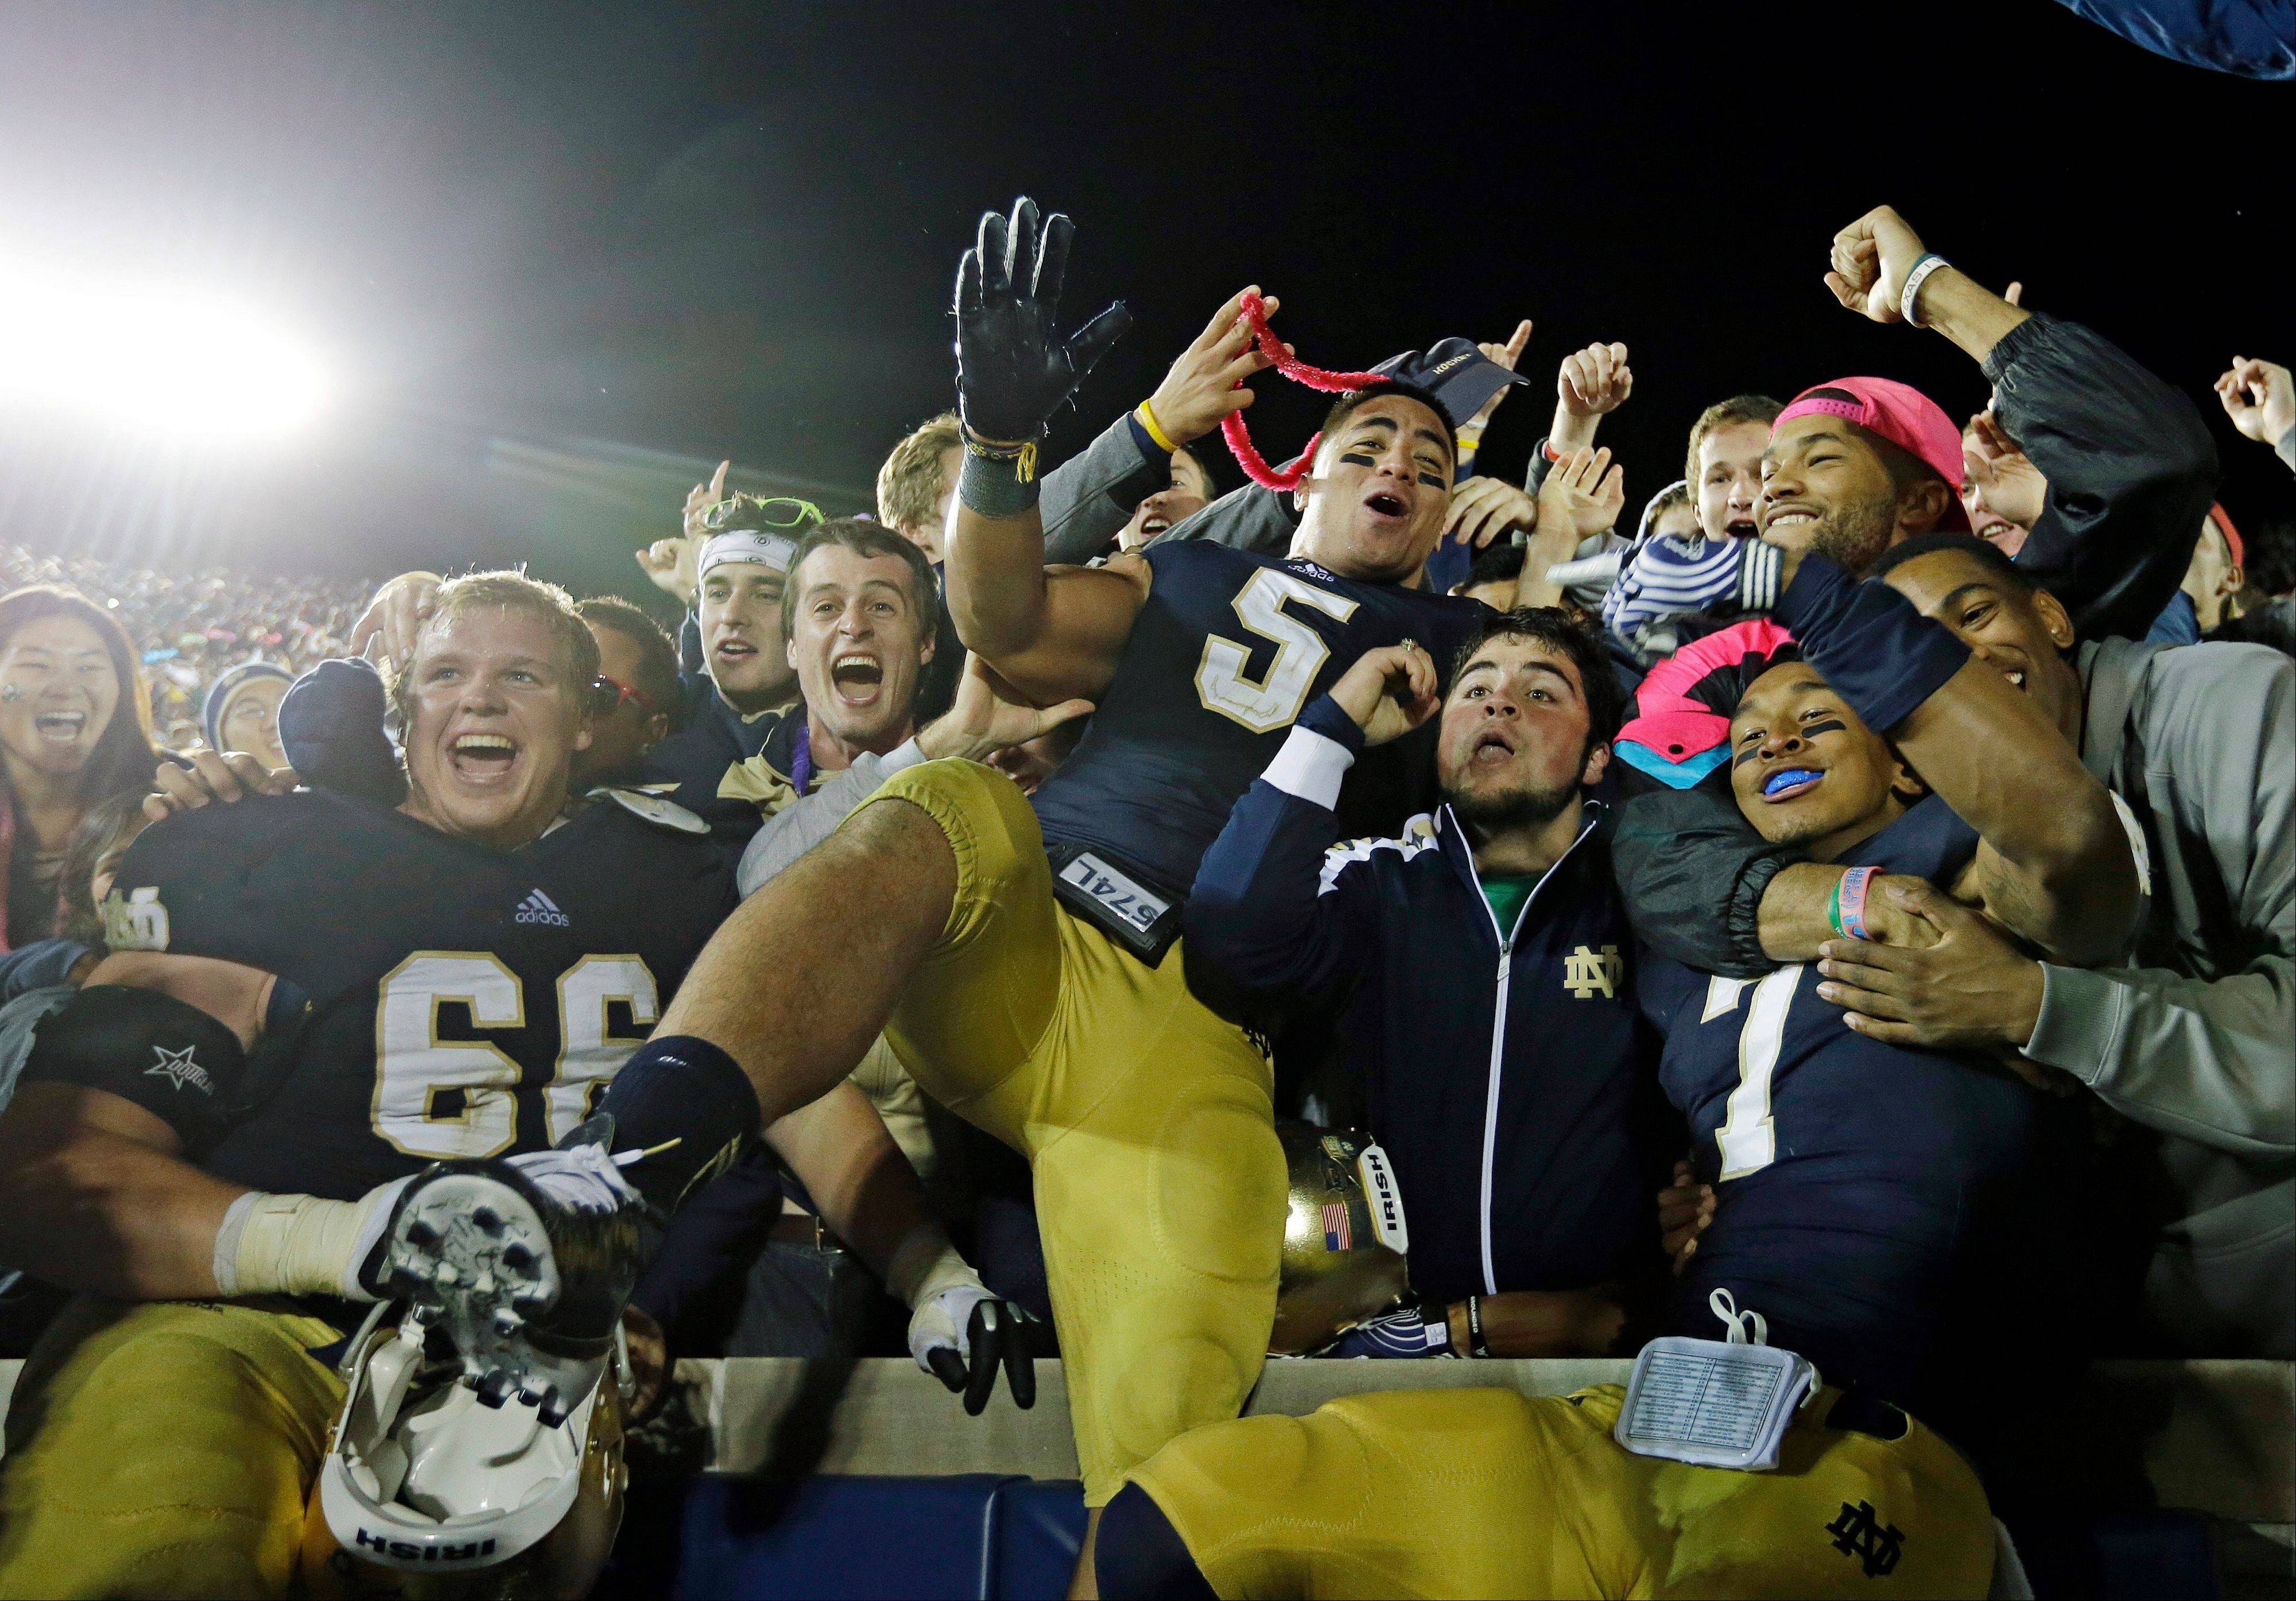 On Sept. 22, Notre Dame's Chris Watt (66), Manti Te'o (5) and TJ Jones (7) celebrate with fans after Notre Dame defeated Michigan 13-6. Watt is a former Glenbard West star who could be celebrating once more tonight in the BCS championship game.